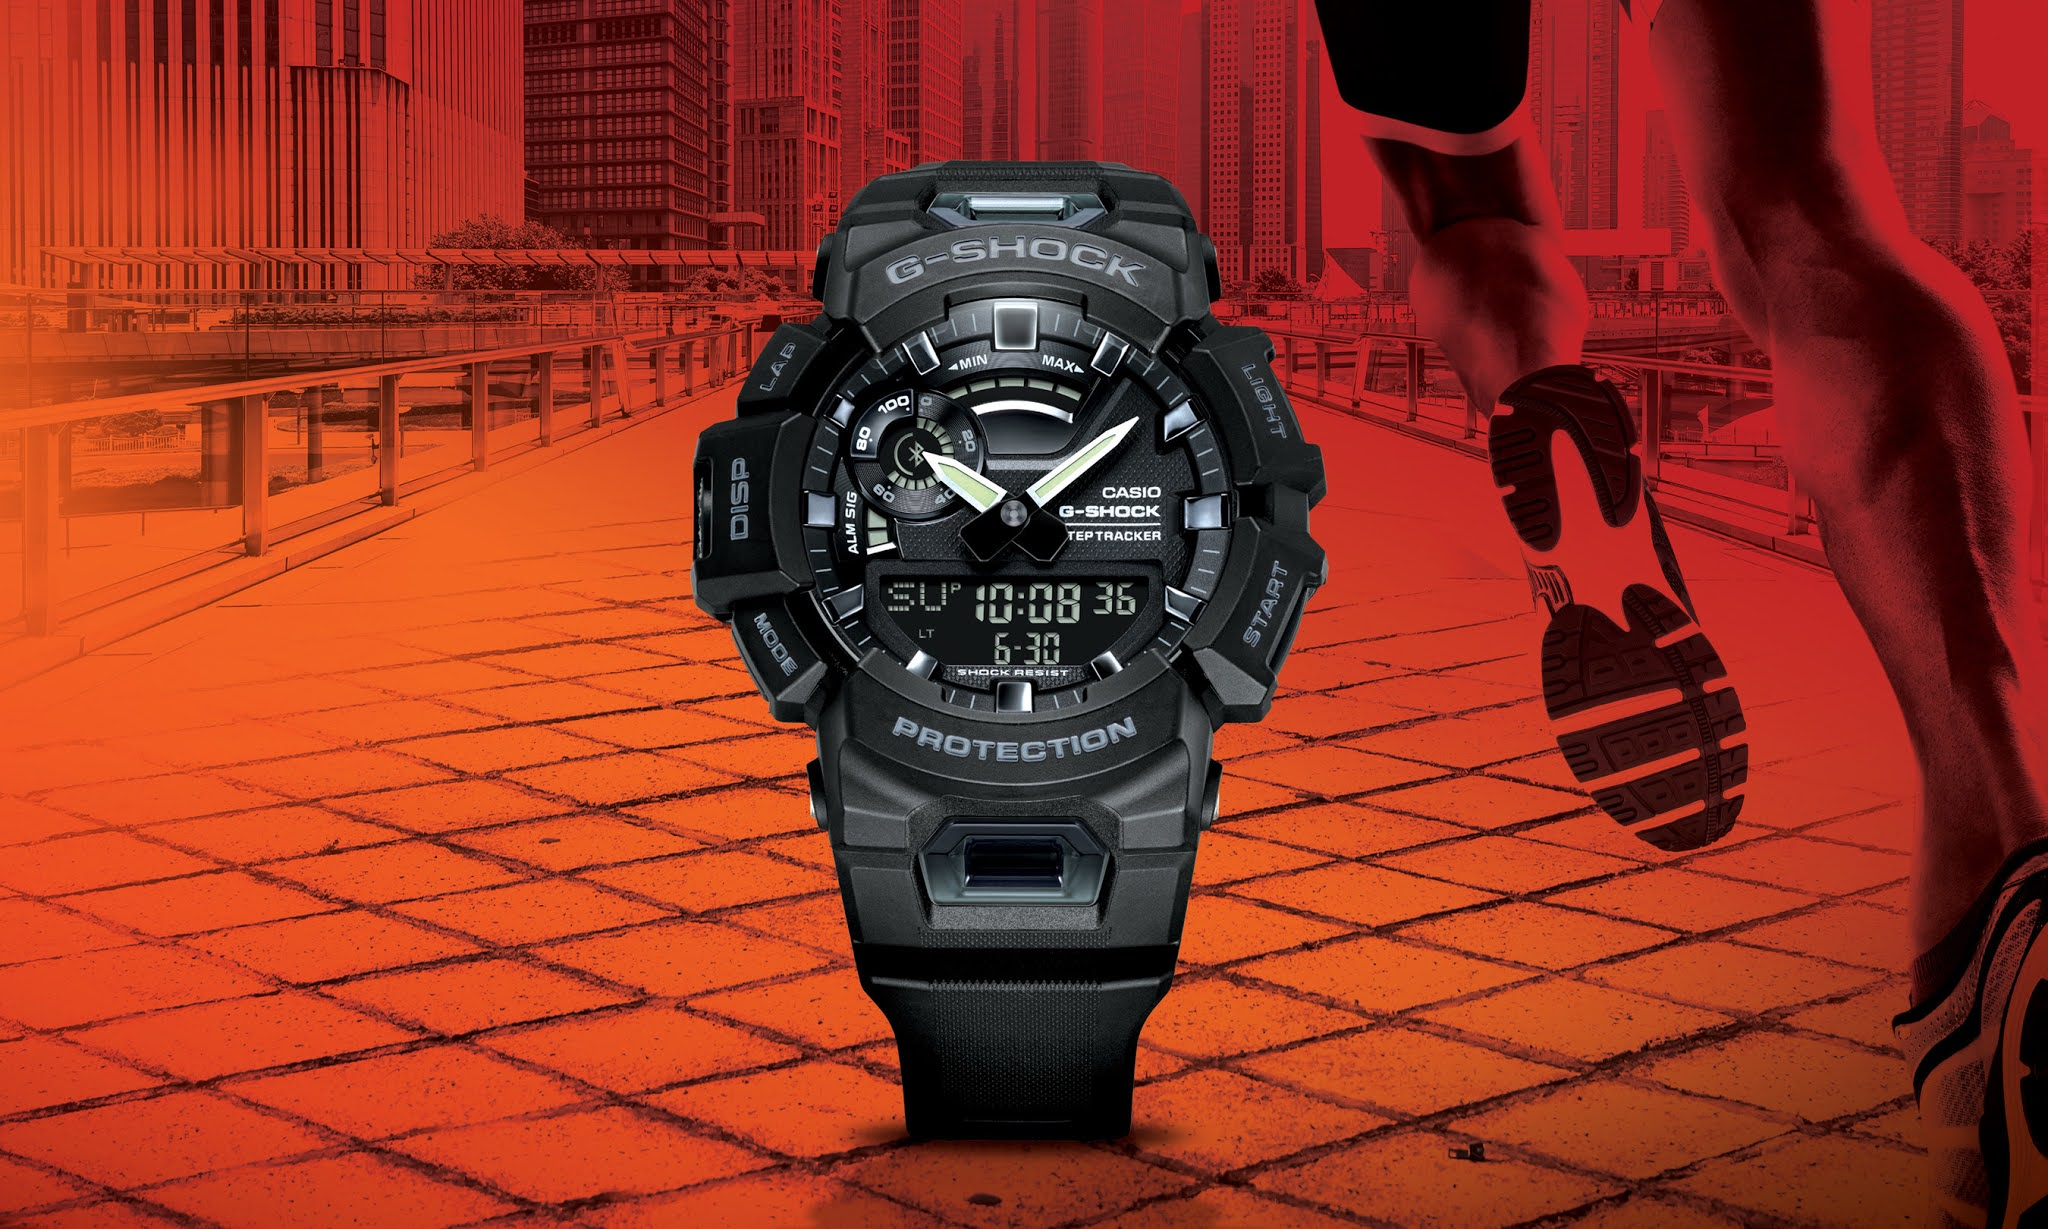 G-SHOCK Expands its G-SHOCK Move Lineup of Timepieces with New Fitness Focused and Connected, GBA900